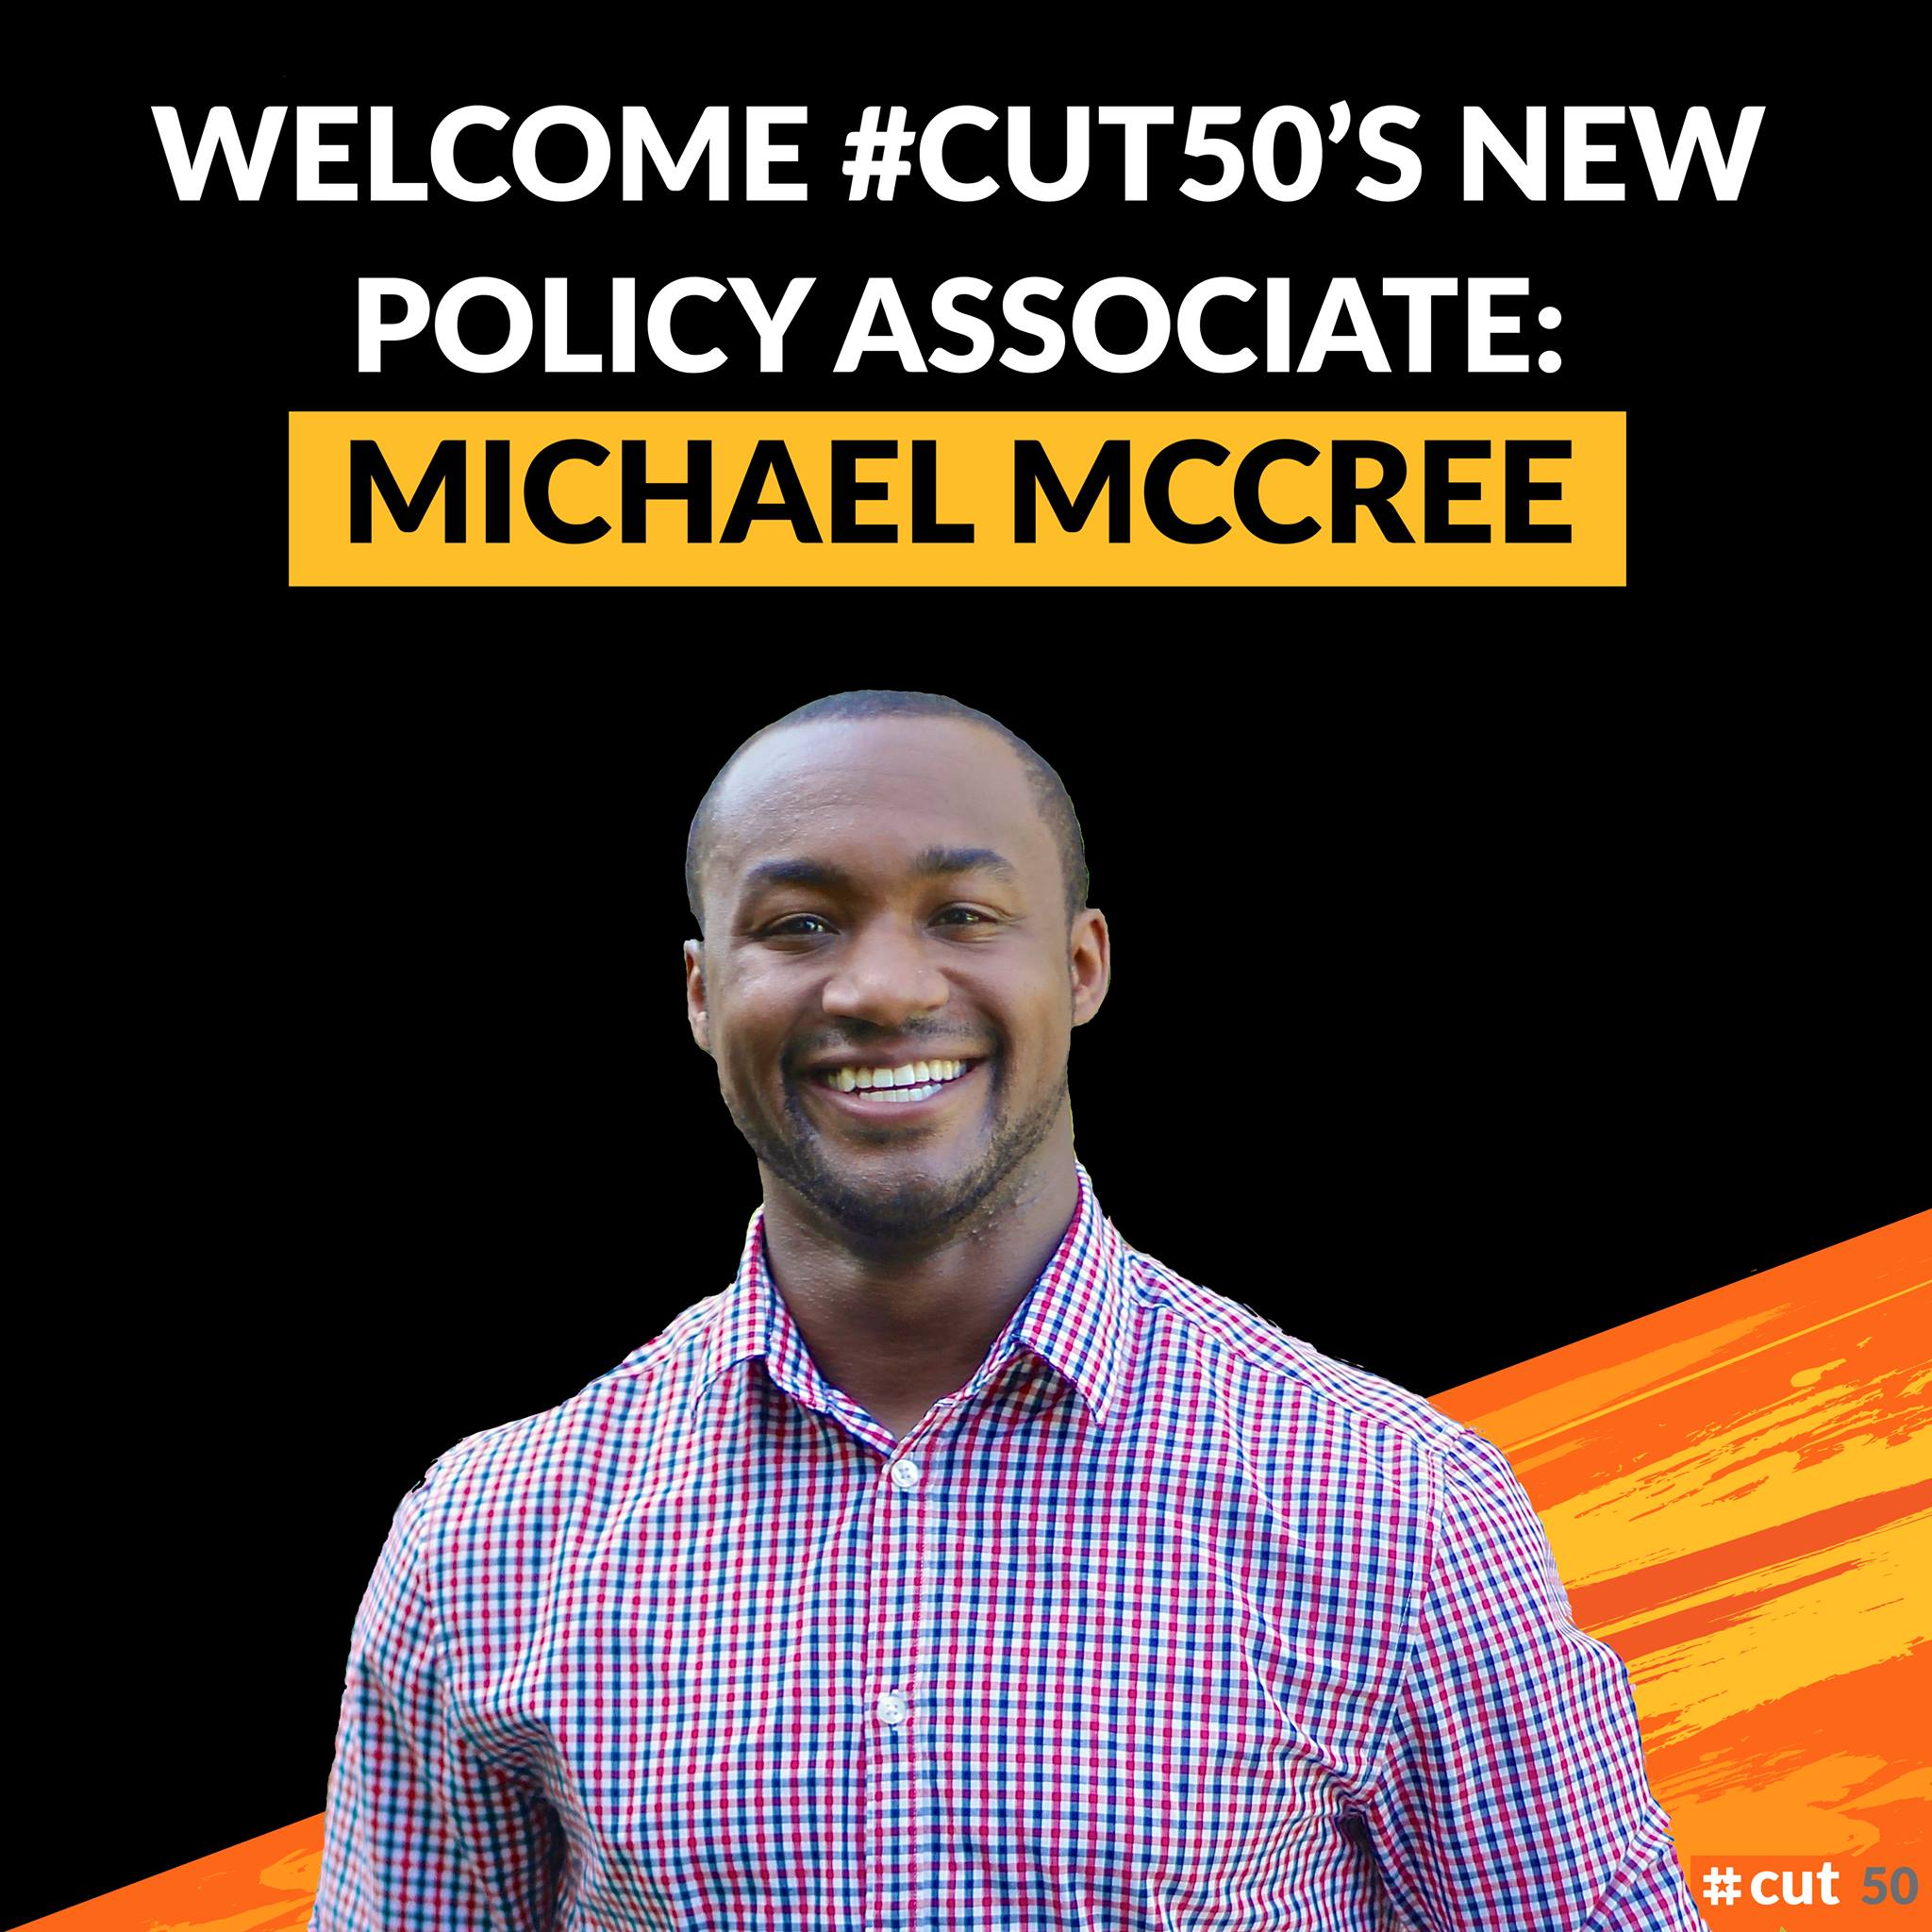 Introducing Our New Policy Associate Michael McCree